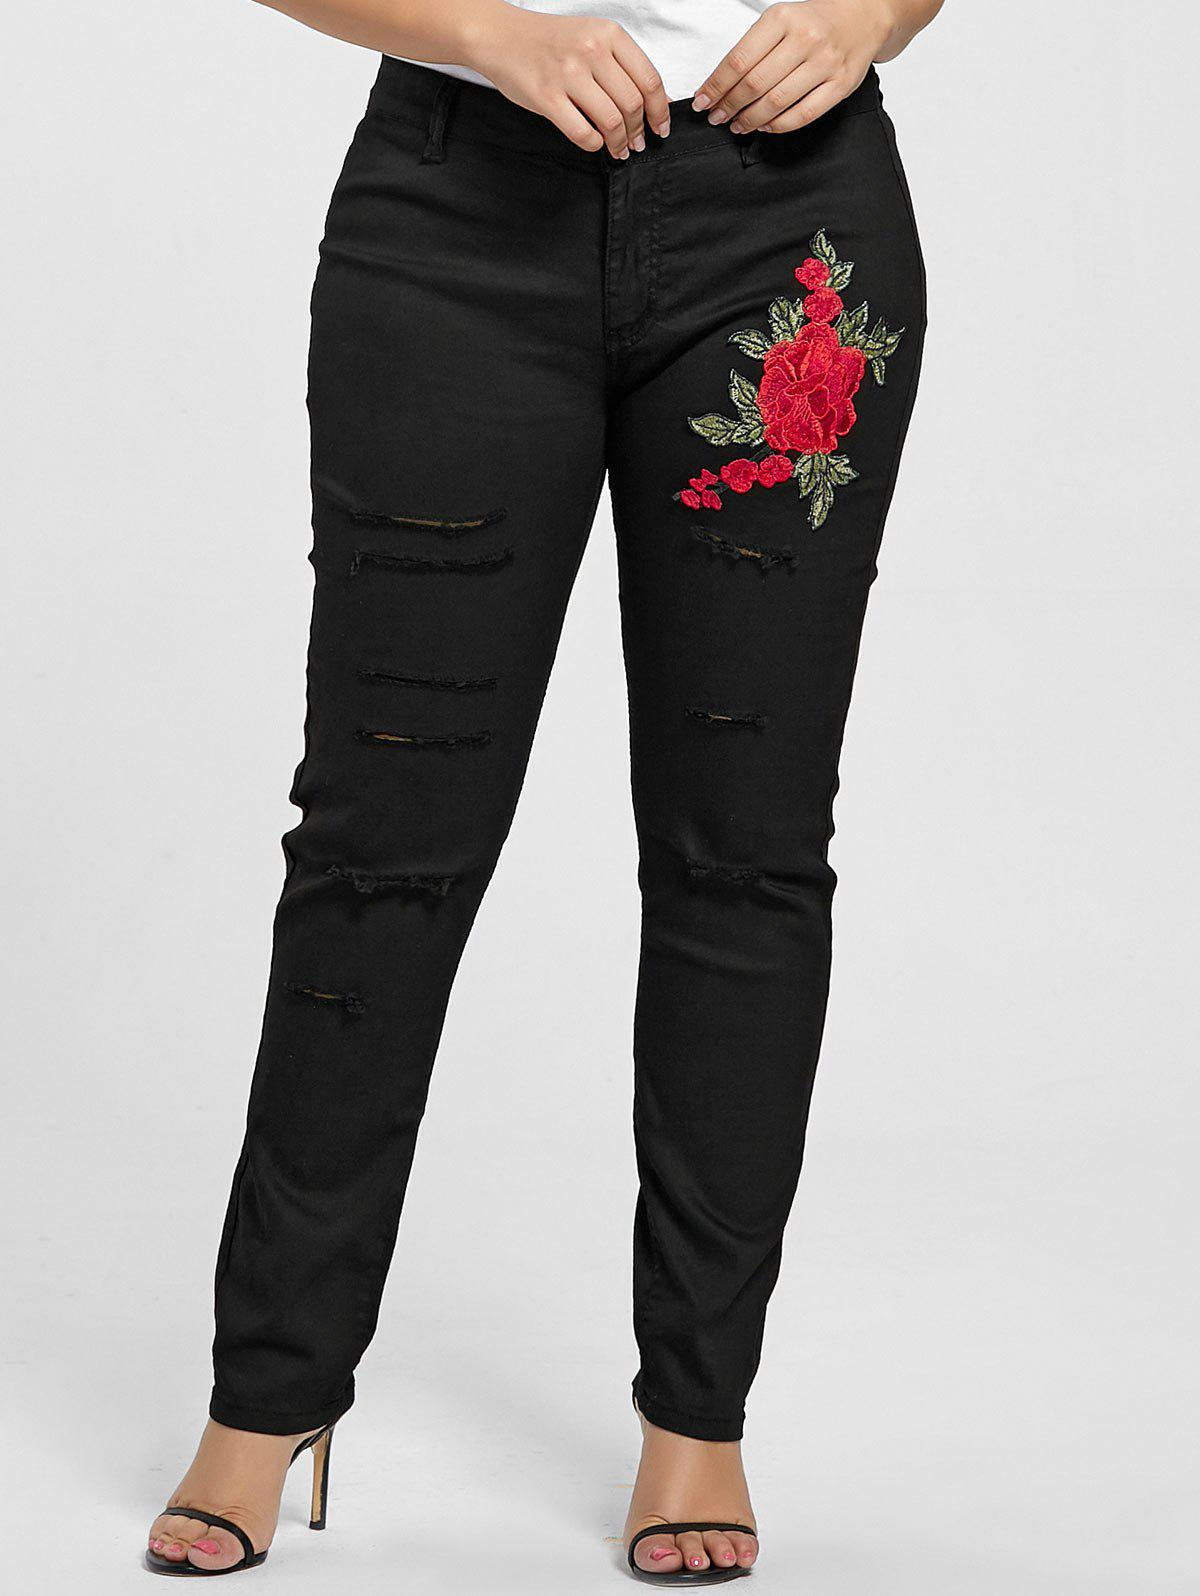 Plus Size Ripped Floral Embroidered JeansWOMEN<br><br>Size: 3XL; Color: BLACK; Style: Fashion; Length: Normal; Material: Cotton,Jeans,Polyester; Fit Type: Skinny; Waist Type: Mid; Closure Type: Zipper Fly; Pattern Type: Floral; Embellishment: Embroidery; Pant Style: Pencil Pants; Weight: 0.3900kg; Package Contents: 1 x Jeans;